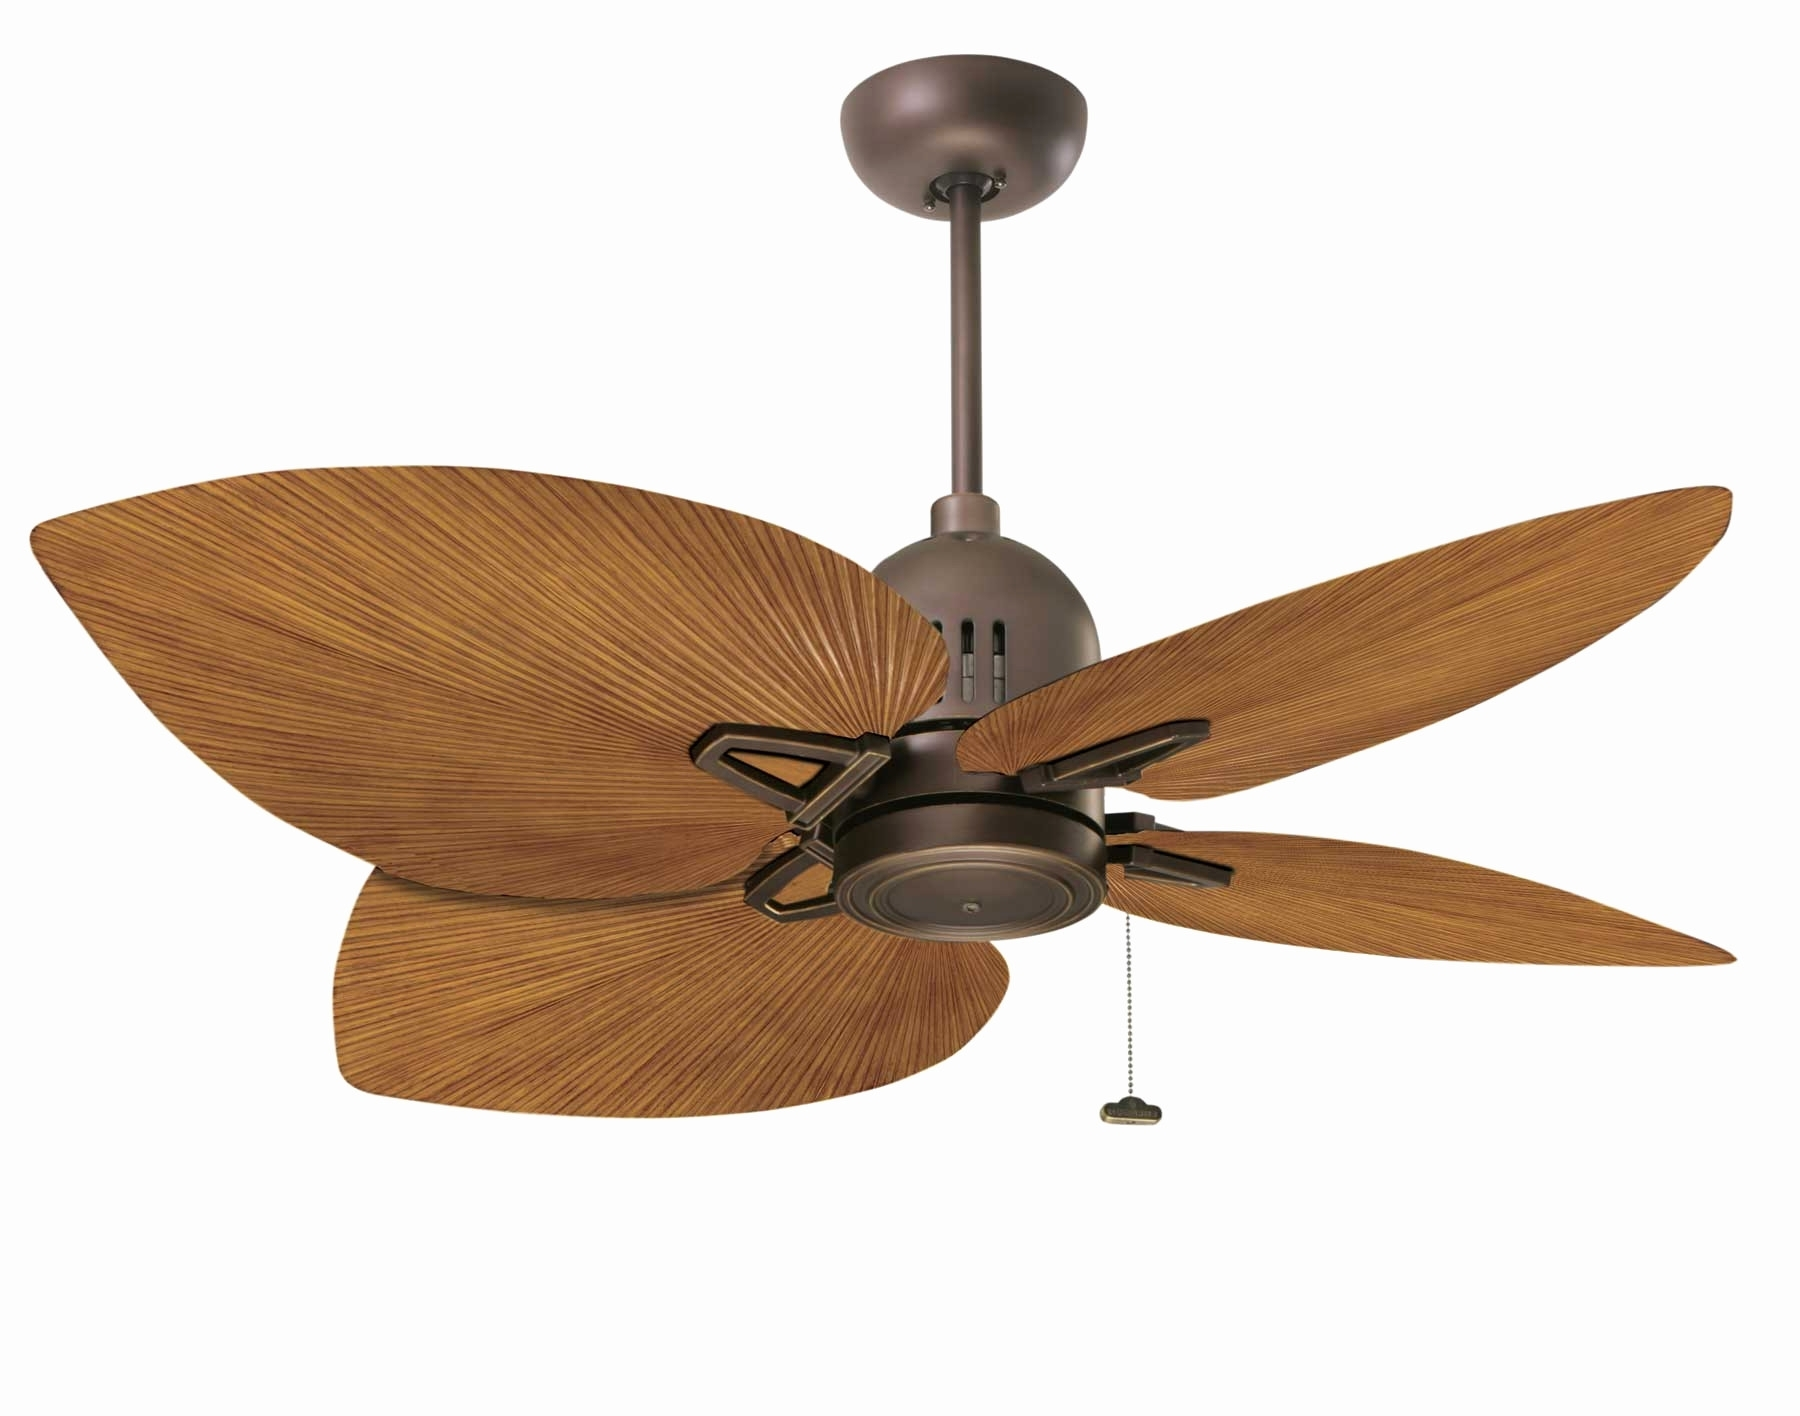 Tropical Outdoor Ceiling Fans Lovely Bigleaf Ceiling Fans Twin Pertaining To Most Up To Date Tropical Outdoor Ceiling Fans With Lights (View 18 of 20)